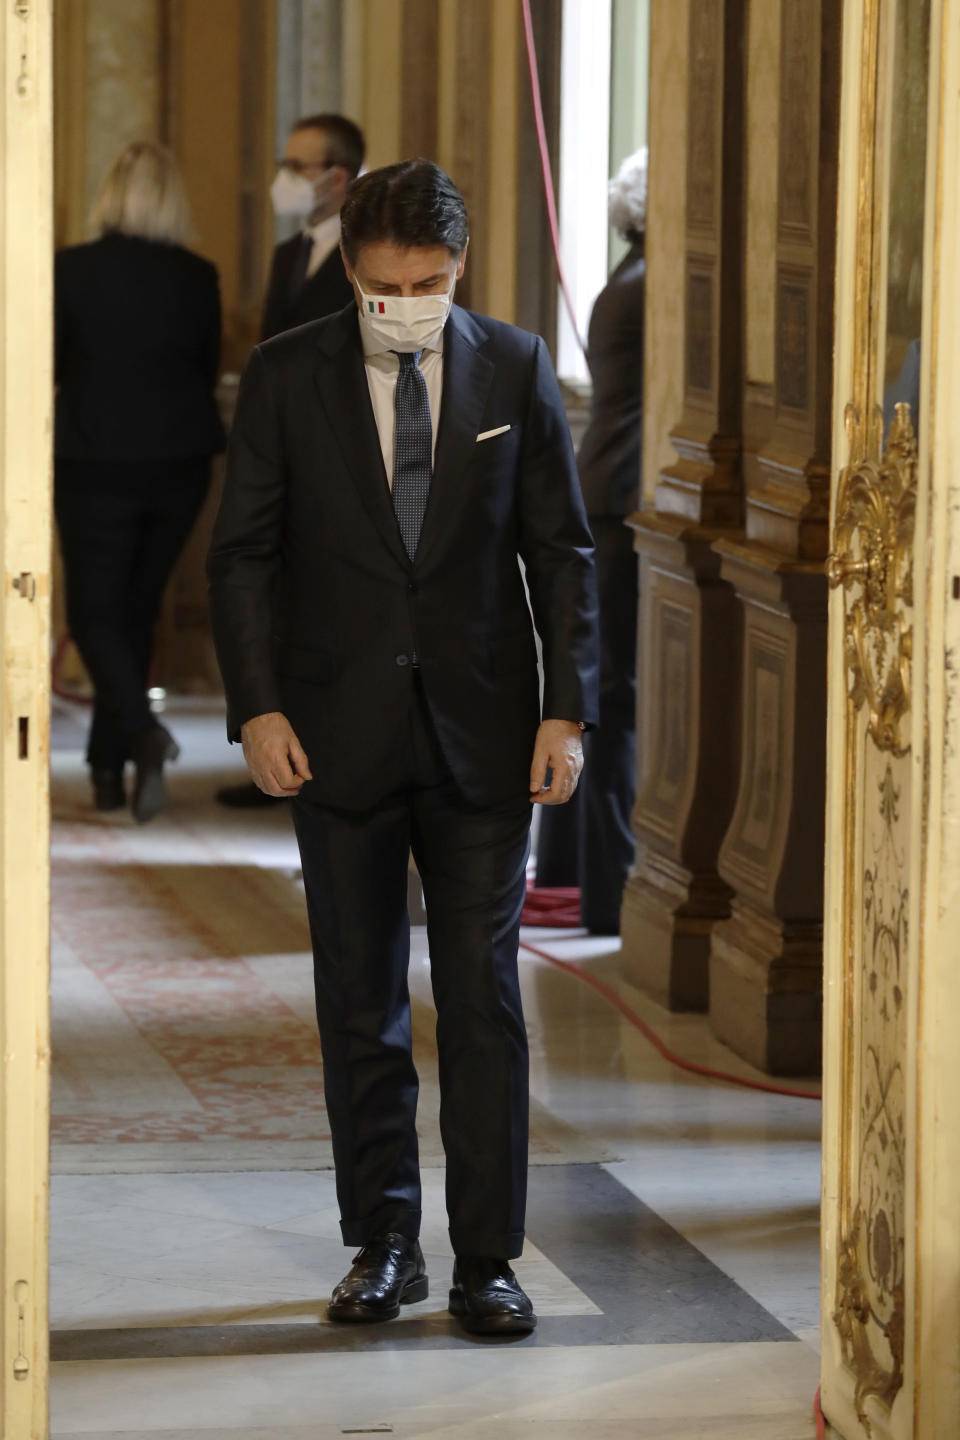 FILE - In this Saturday, Feb. 13, 2021 file photo, Italian outgoing Premier Giuseppe Conte arrives to hand over the cabinet minister bell to new Premier Mario Draghi, during the handover ceremony at Chigi Palace Premier's office, in Rome, Saturday, Feb. 13, 2021. When Giuseppe Conte exited the premier's office, palace employees warmly applauded in him appreciation. But that's hardly likely to be Conte's last hurrah in politics. Just a few hours after the handover-ceremony to transfer power to Mario Draghi, the former European Central Bank chief now tasked with leading Italy in the pandemic, Conte dashed off a thank-you note to citizens that sounded more like an ''arrivederci″ (see you again) then a retreat from the political world he was unexpectedly propelled into in 2018. (AP Photo/Andrew Medichini, File)